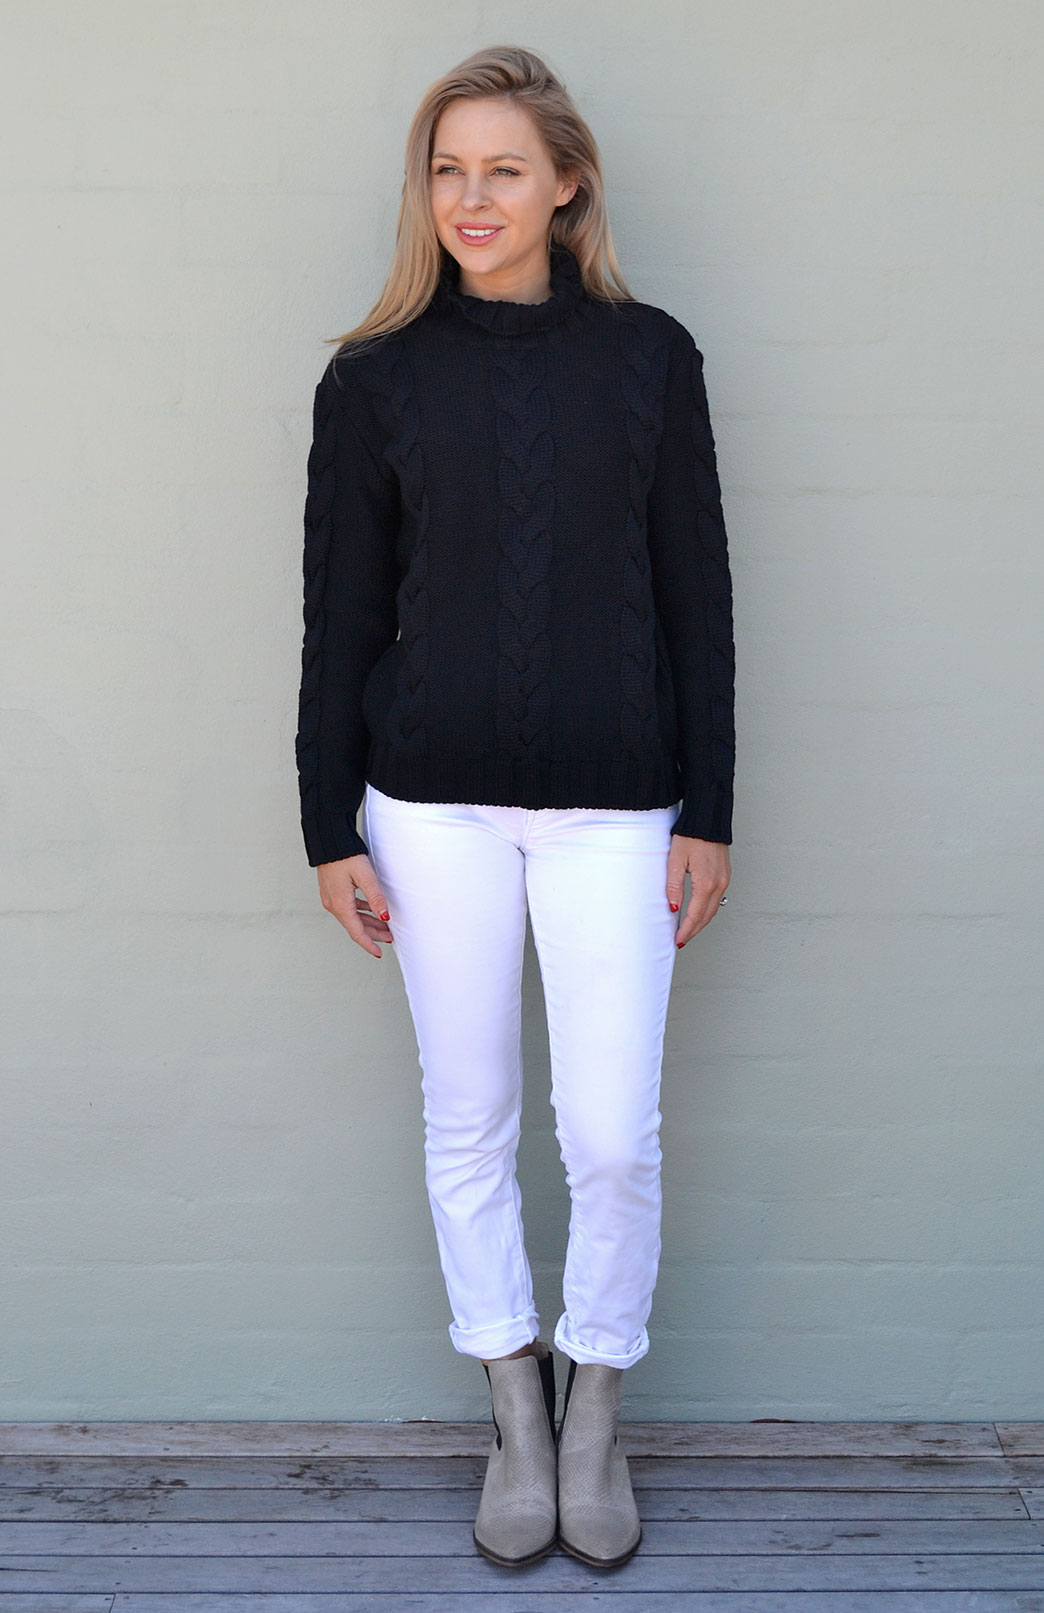 Cable Jumper - Women's Pure Merino Wool Navy Blue Cable Knit Jumper - Smitten Merino Tasmania Australia